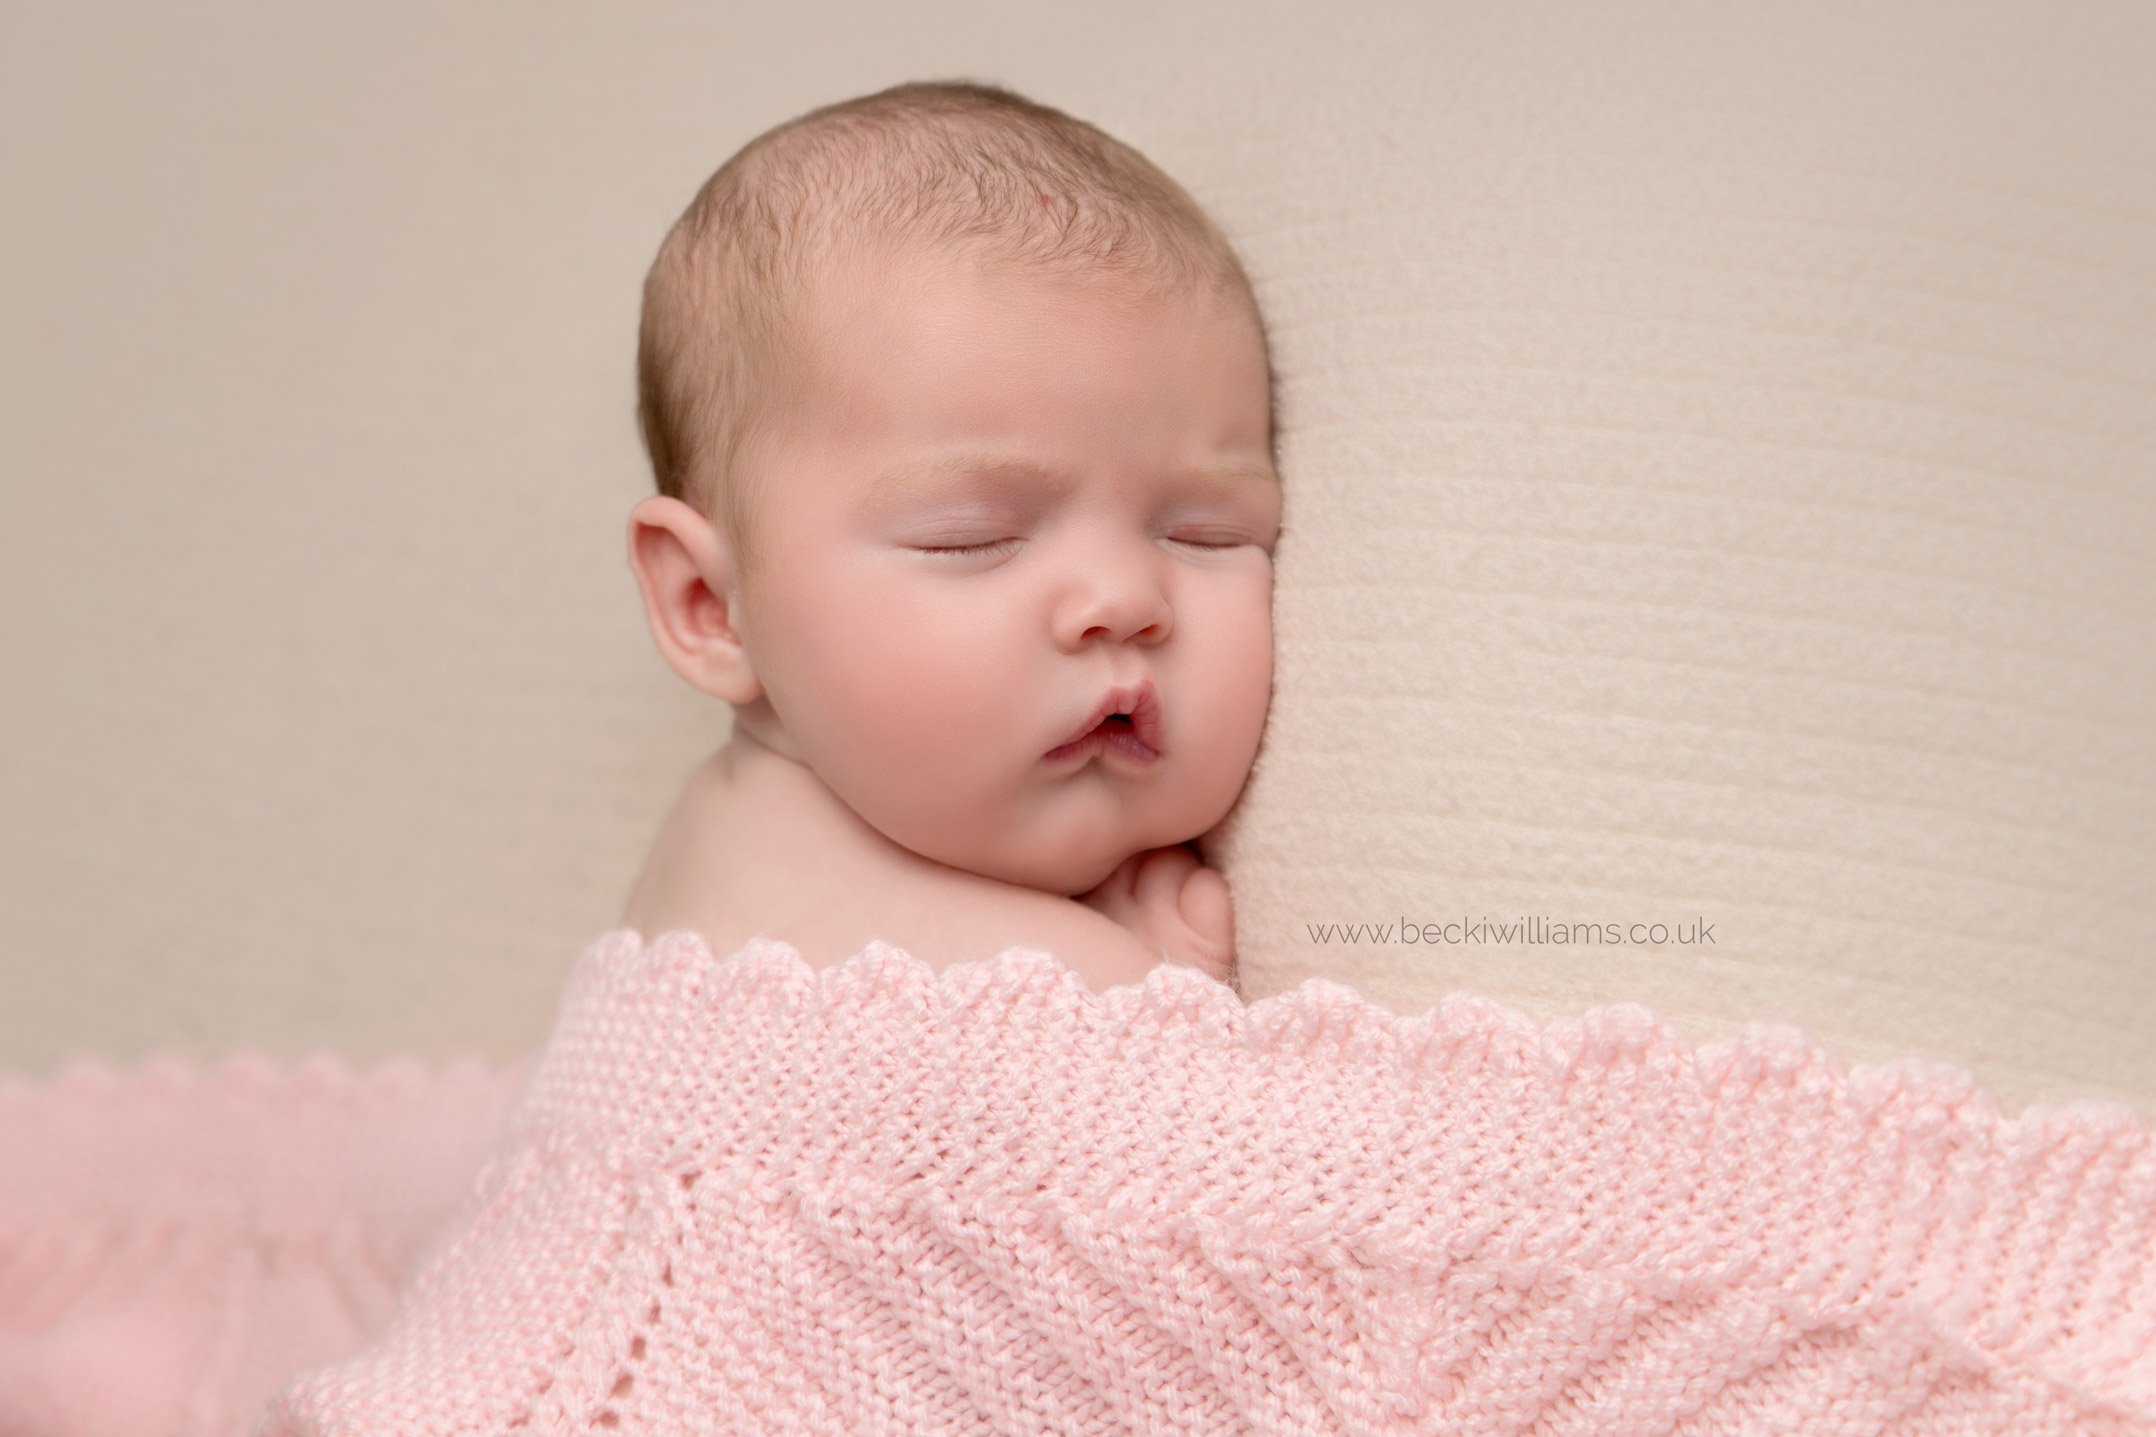 Close up photo of a newborn baby girl sleeping, covered in a pink blanket at her newborn photo shoot in Hemel hempstead